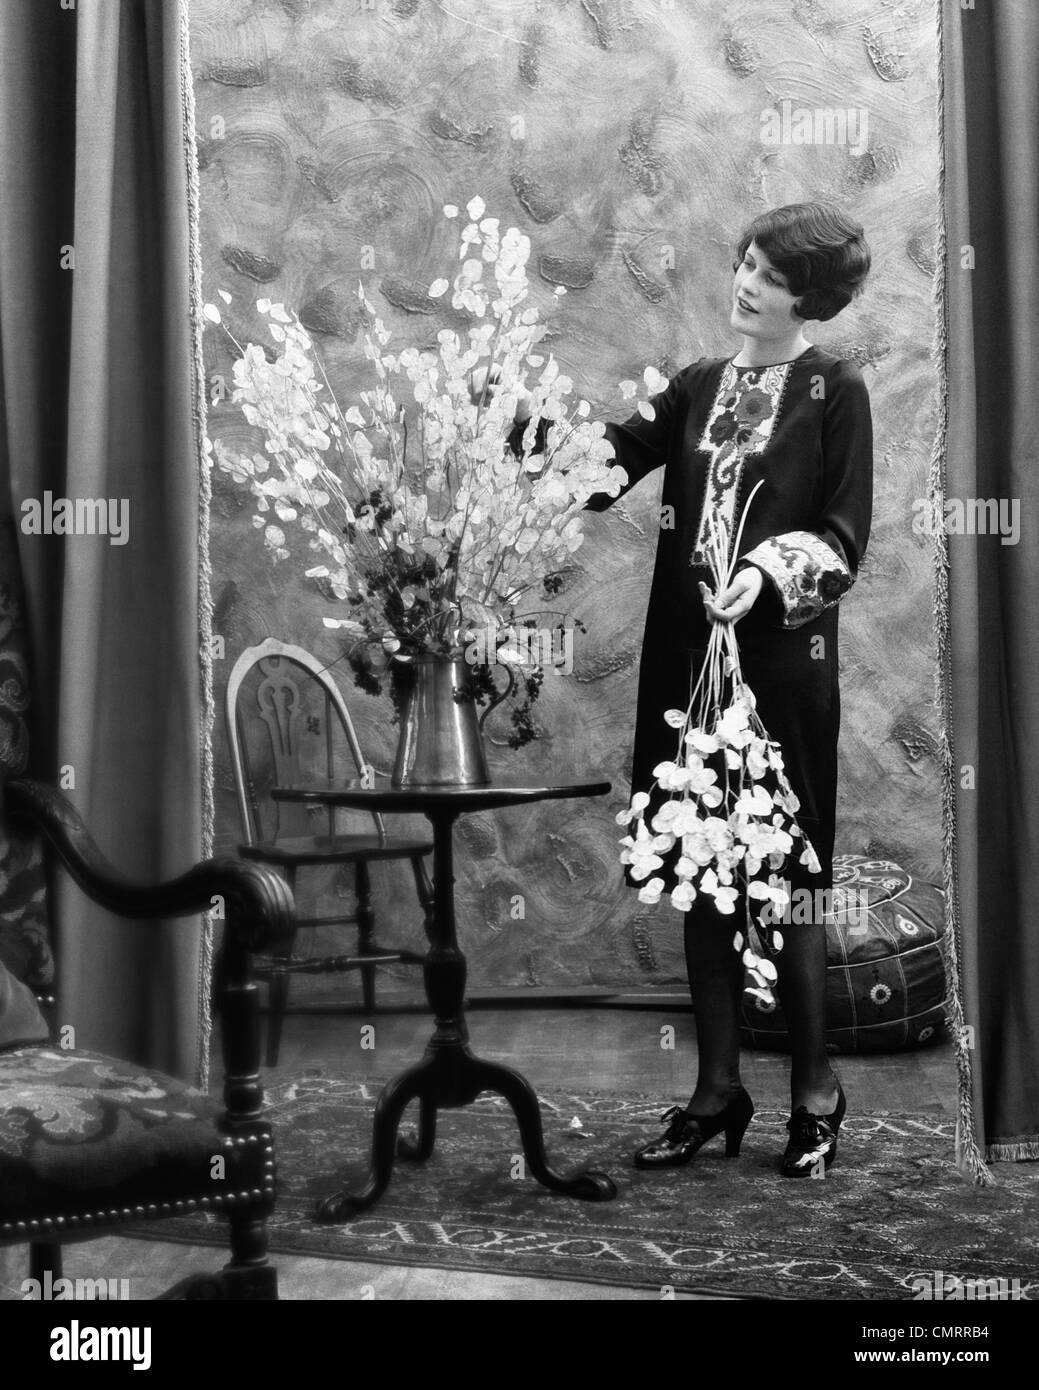 1920s WOMAN ARRANGING FLOWERS IN ALUMINUM PITCHER - Stock Image